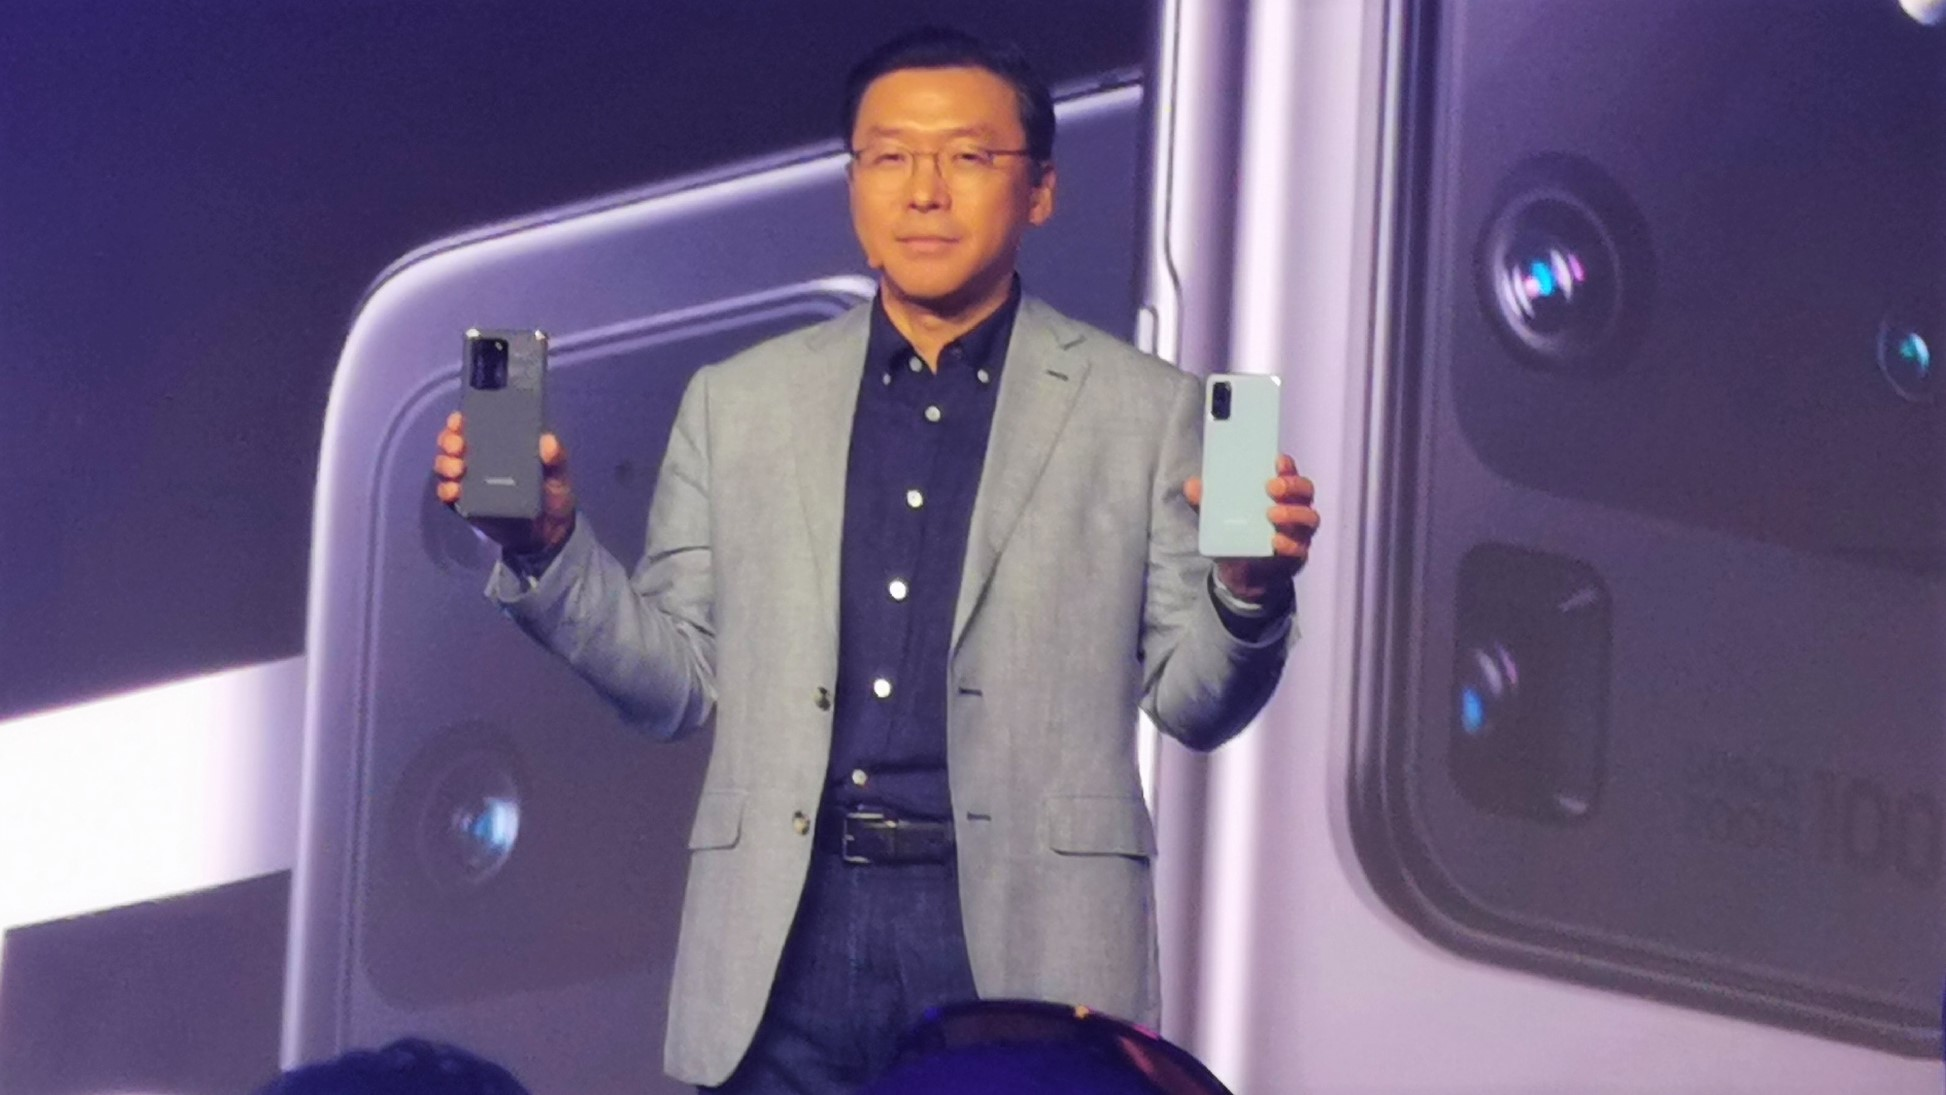 Can Samsung keep smaller Chinese smartphone players at bay this year?